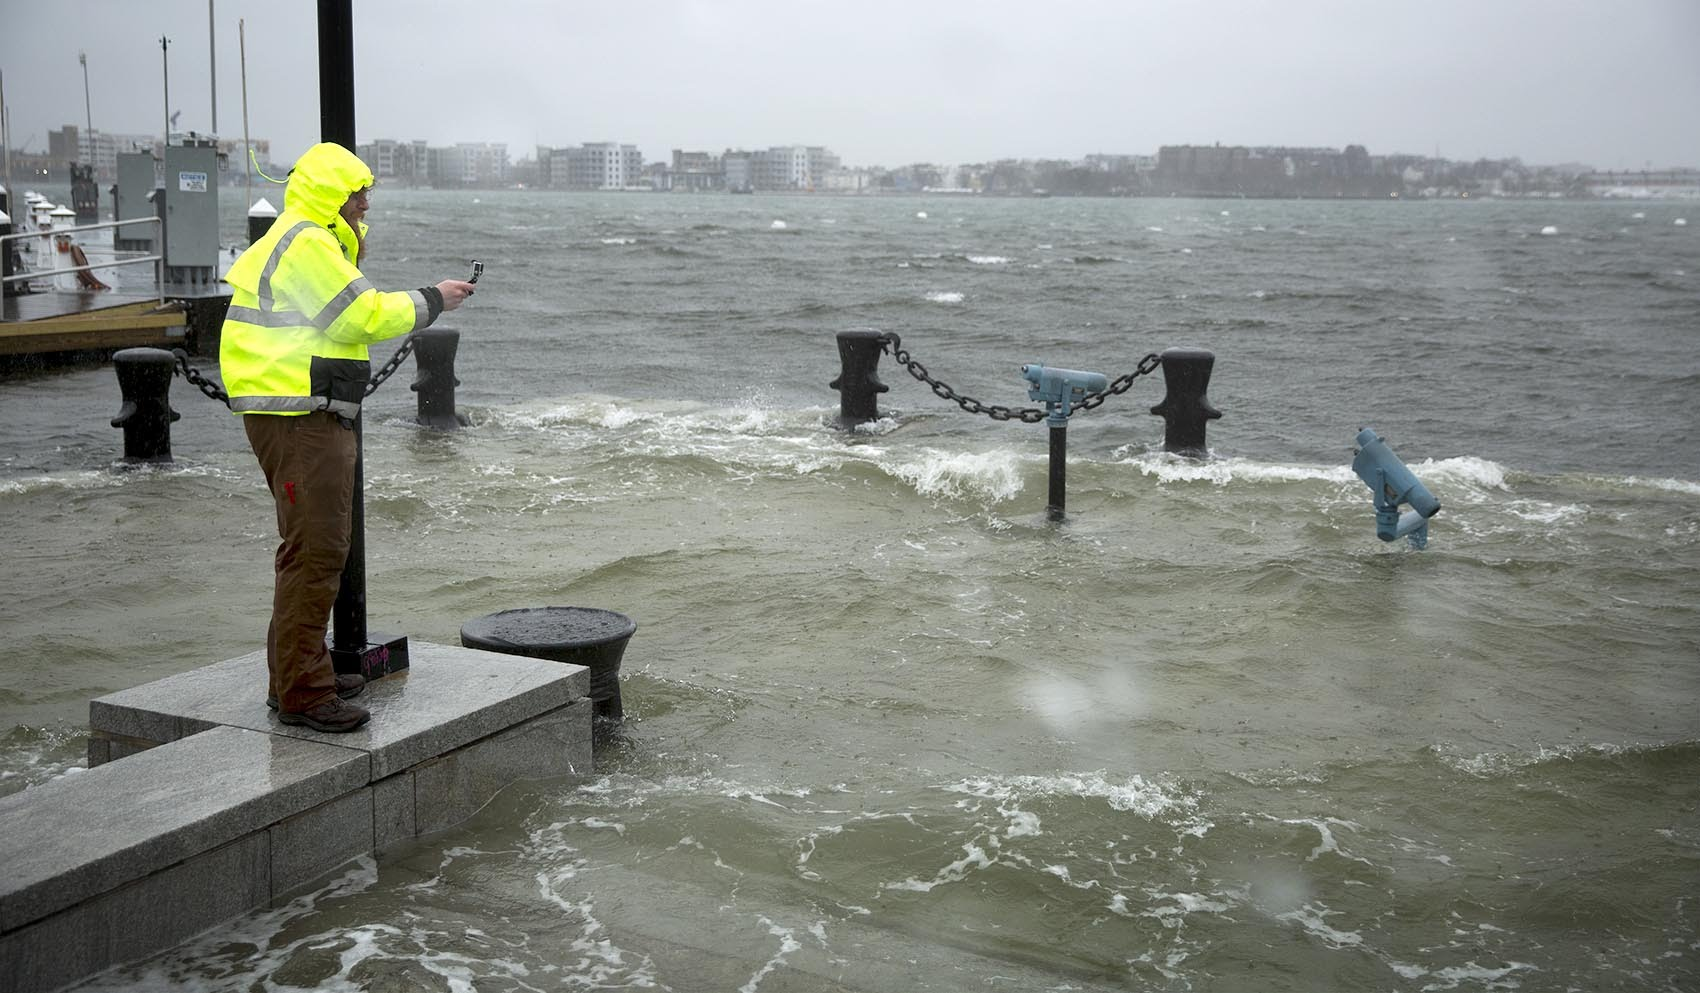 A man takes photographs as floodwaters surge at Boston's Long Wharf in 2018. (Robin Lubbock/WBUR)